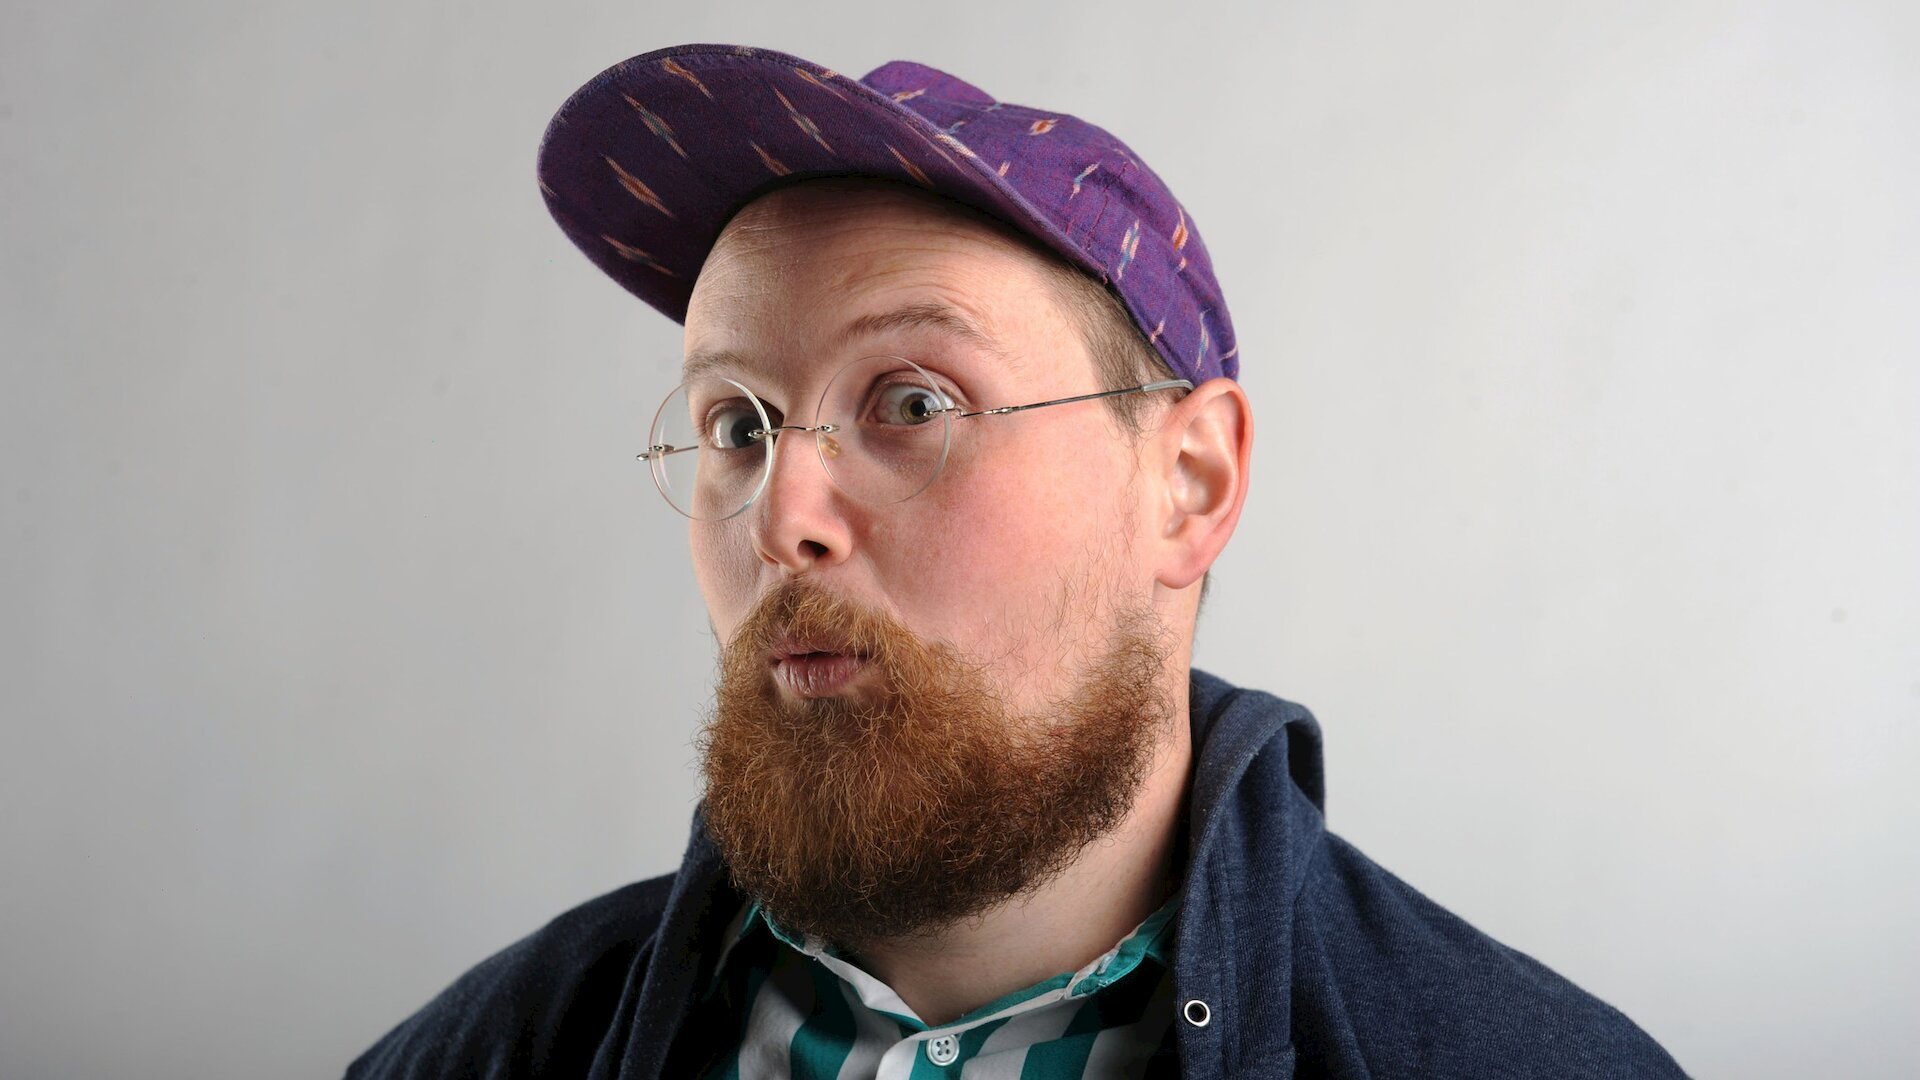 Dan Deacon Atlanta Tickets Variety Playhouse February 28